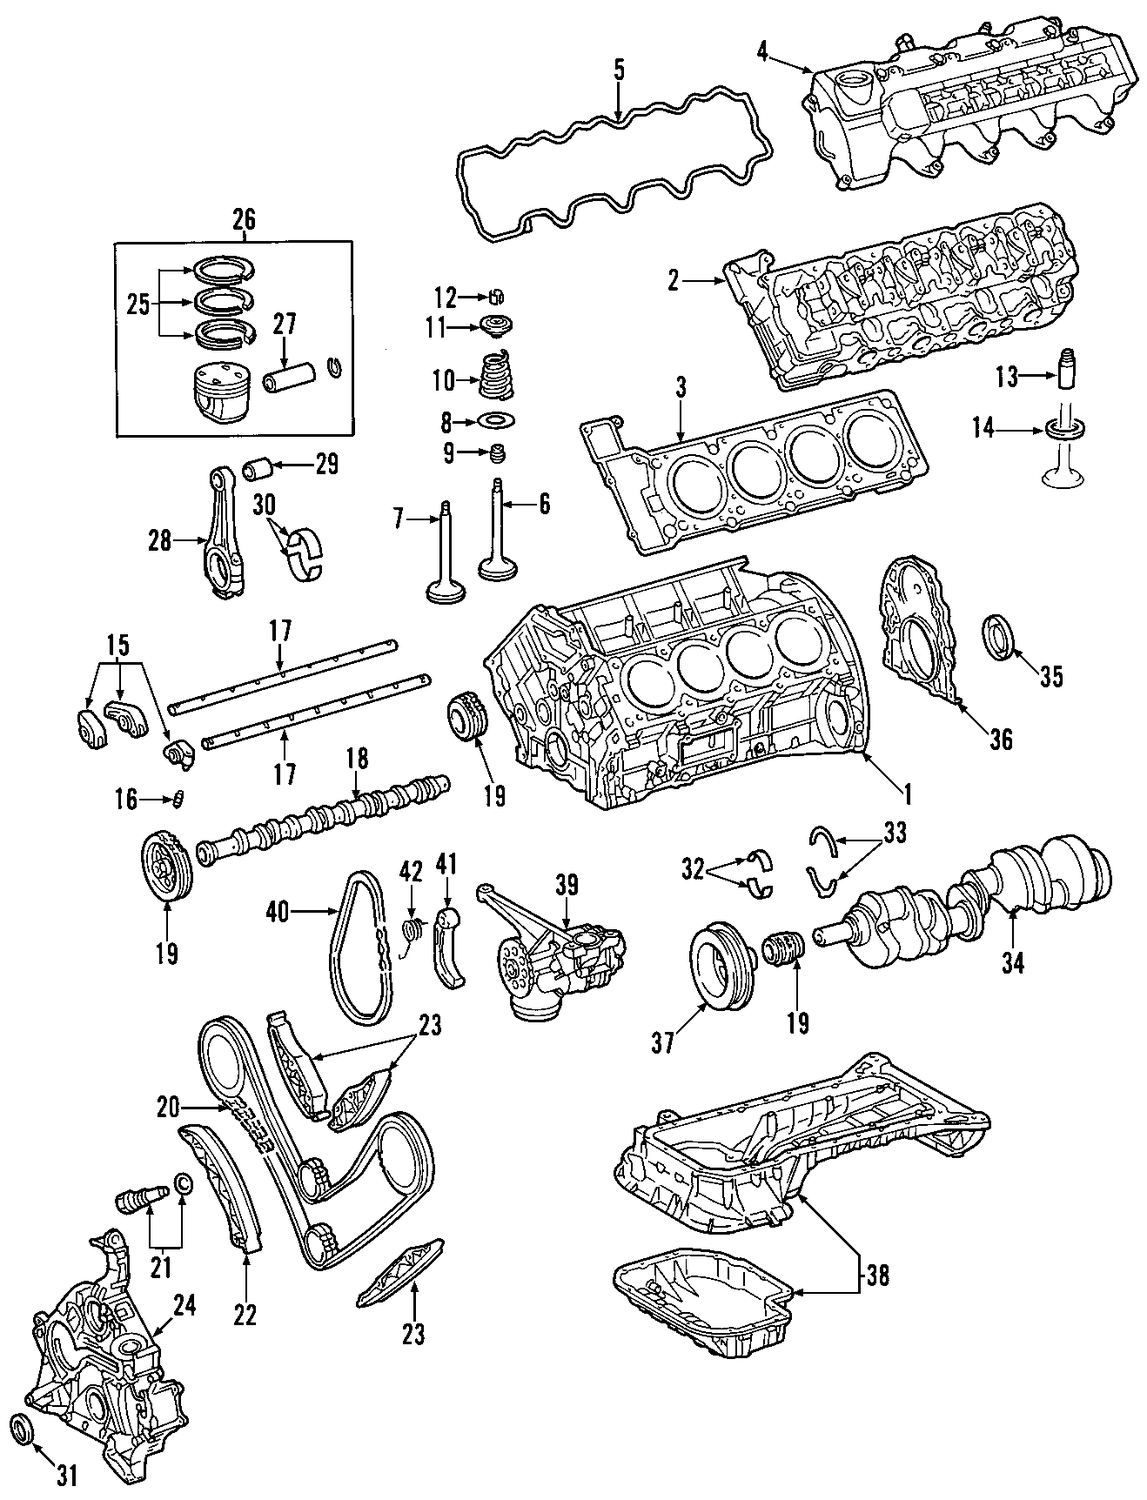 Mercedes Benz Sl Slc Roadster Parts Diagrams With Part